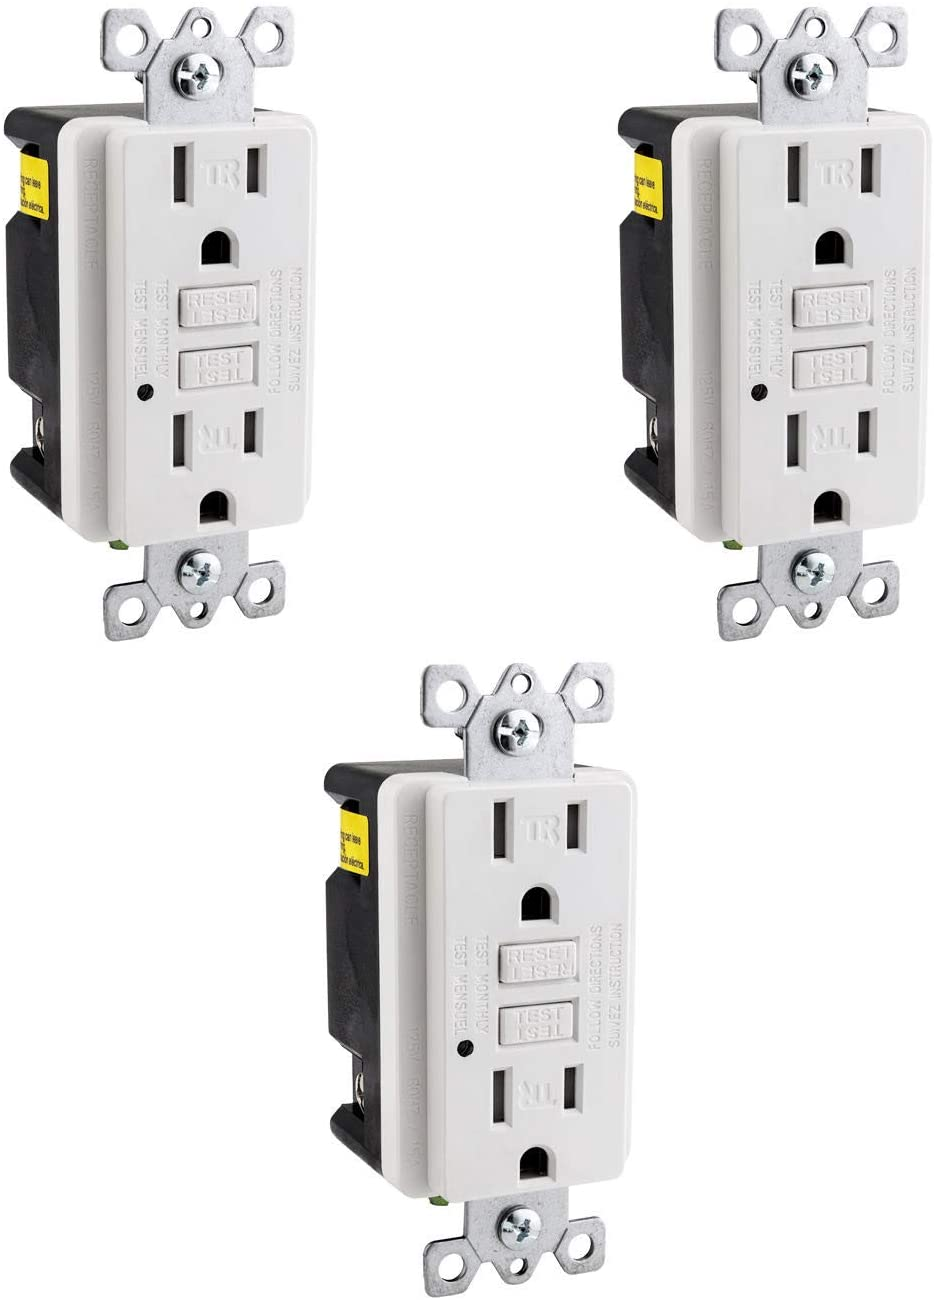 Sunlite 41441-SU GFCI Duplex Outlet 20 Amp, 120 VAC, 2 Pole/3 Wire, Tamper Resistant, Self Testing, Wallplate Included, ETL Listed, 3 Pack